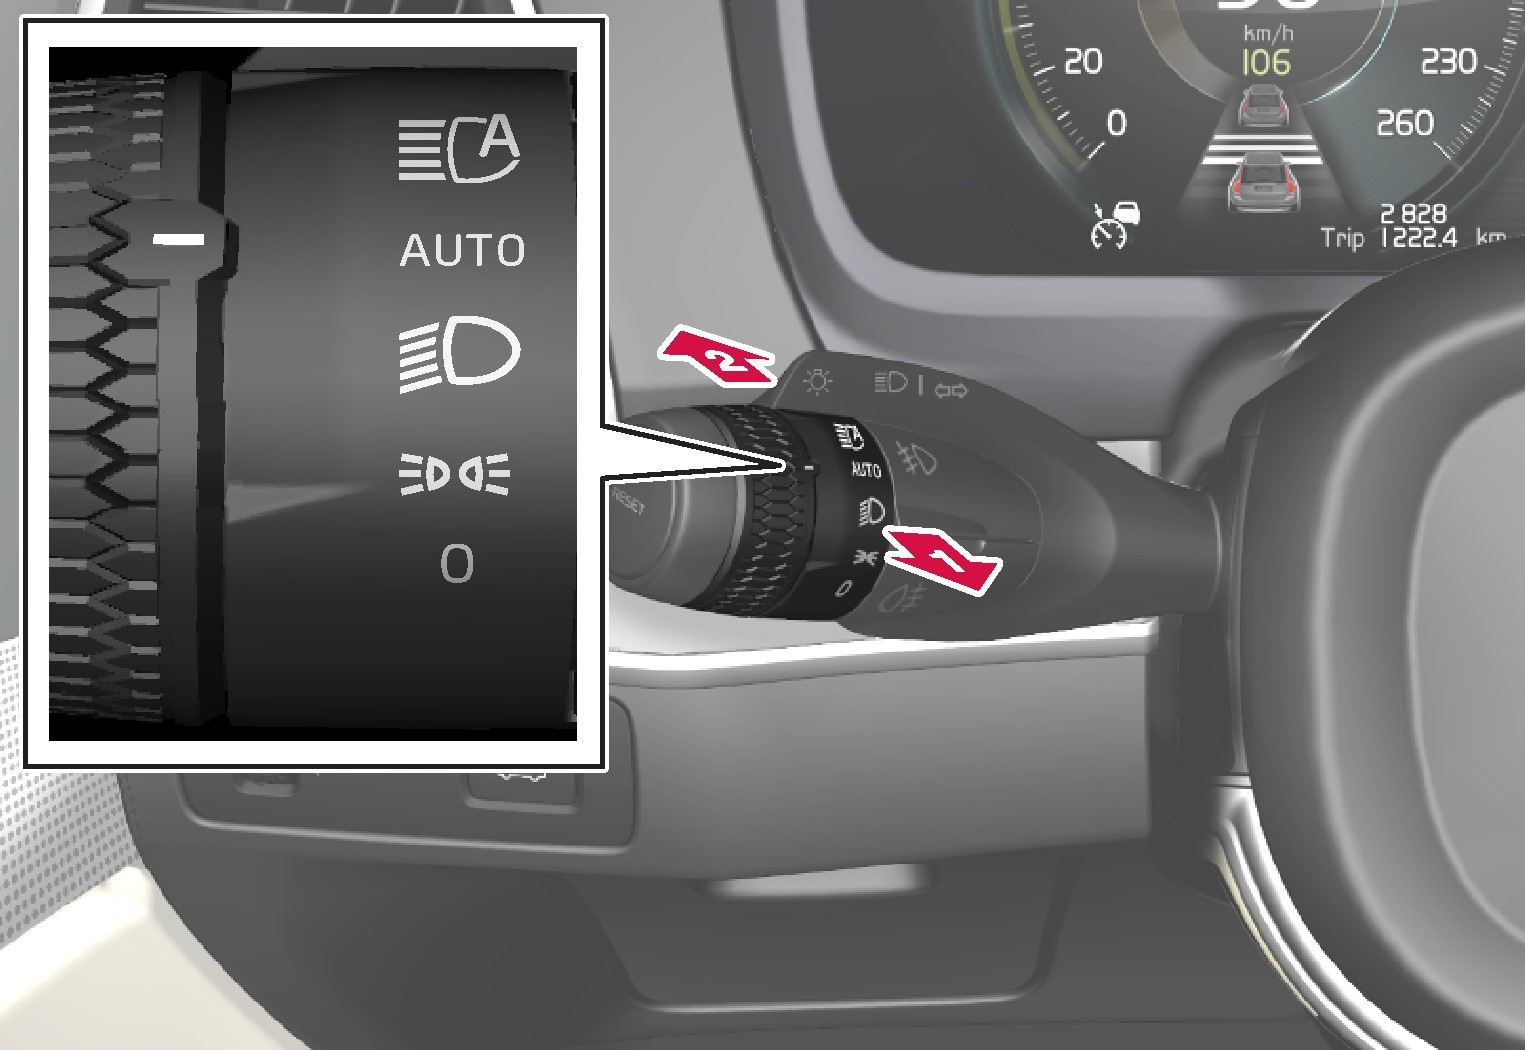 P5-1617 Stalk with turning ring, high beam toggling